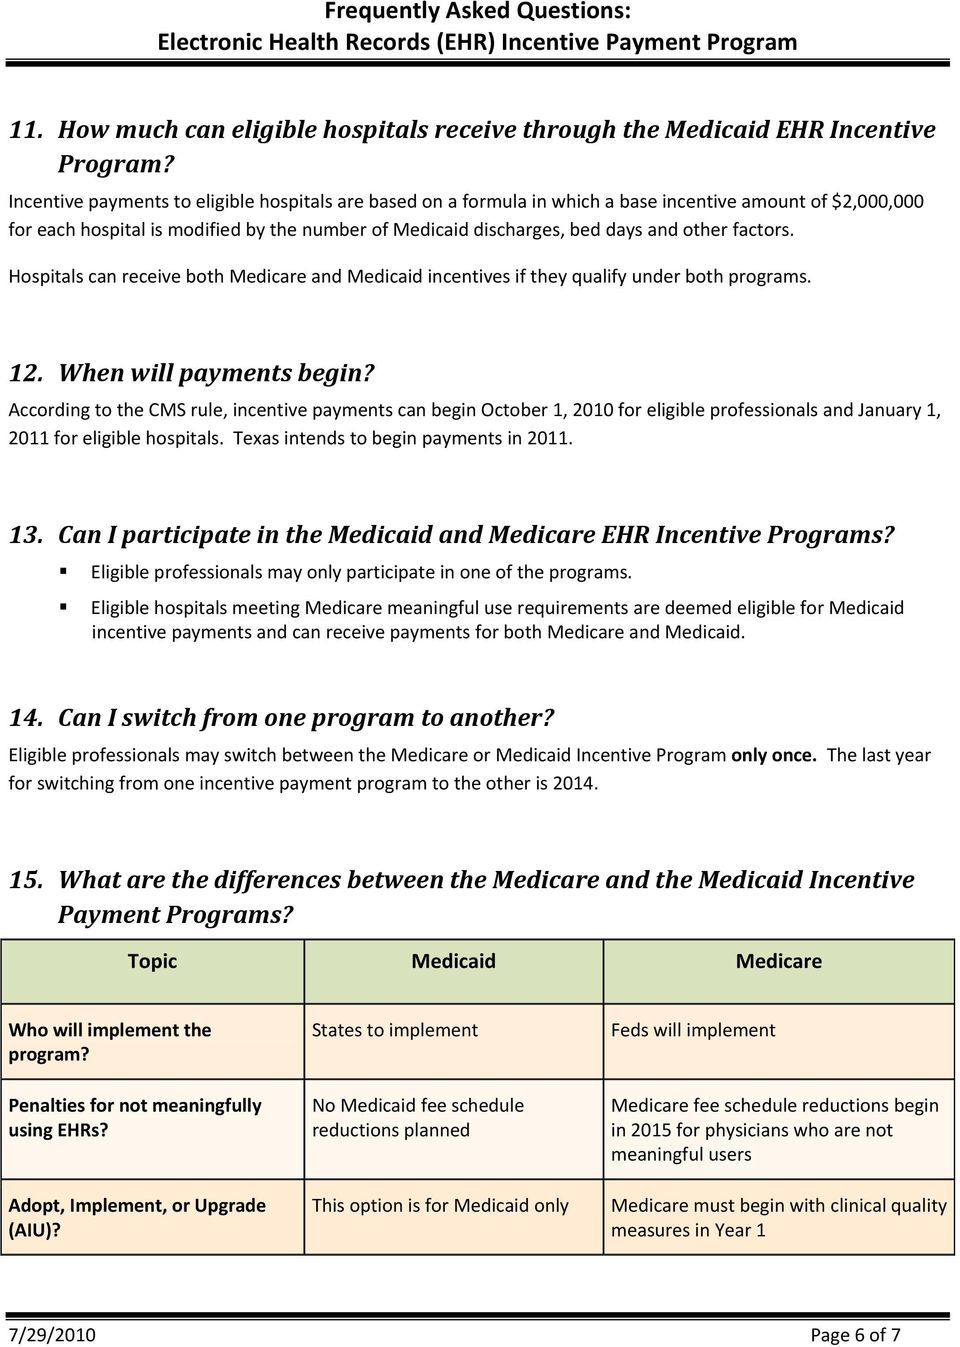 factors. Hospitals can receive both Medicare and Medicaid incentives if they qualify under both programs. 12. When will payments begin?